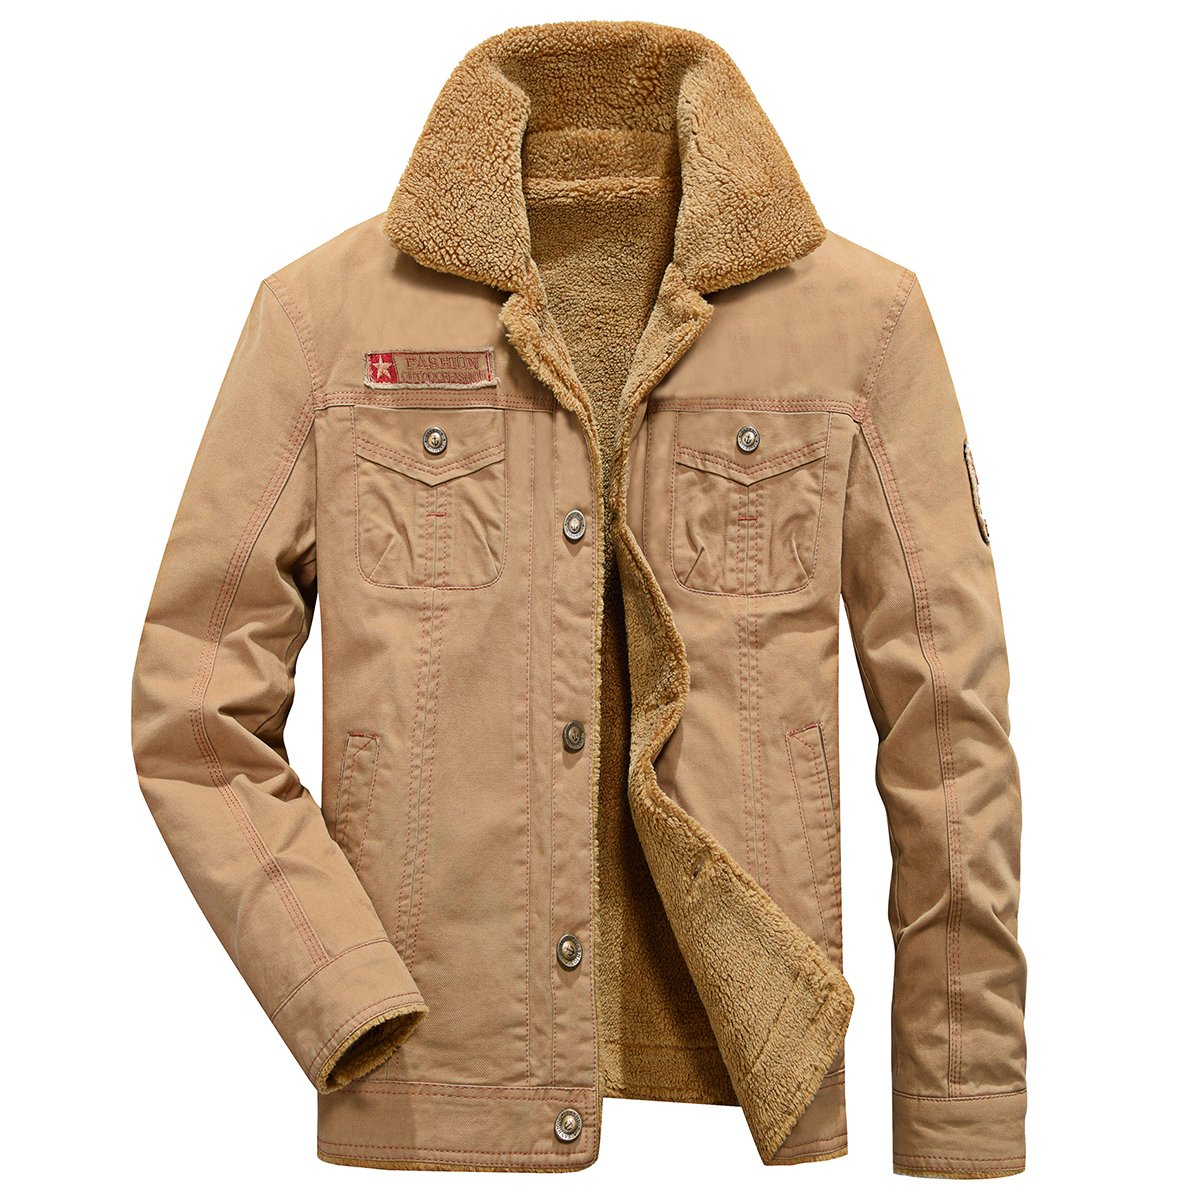 7ecc9e4298f ReFire Gear Men's Winter Warm Wool Lining Military Jacket Casual Cotton  Bomber Coat Outerwear Parka with